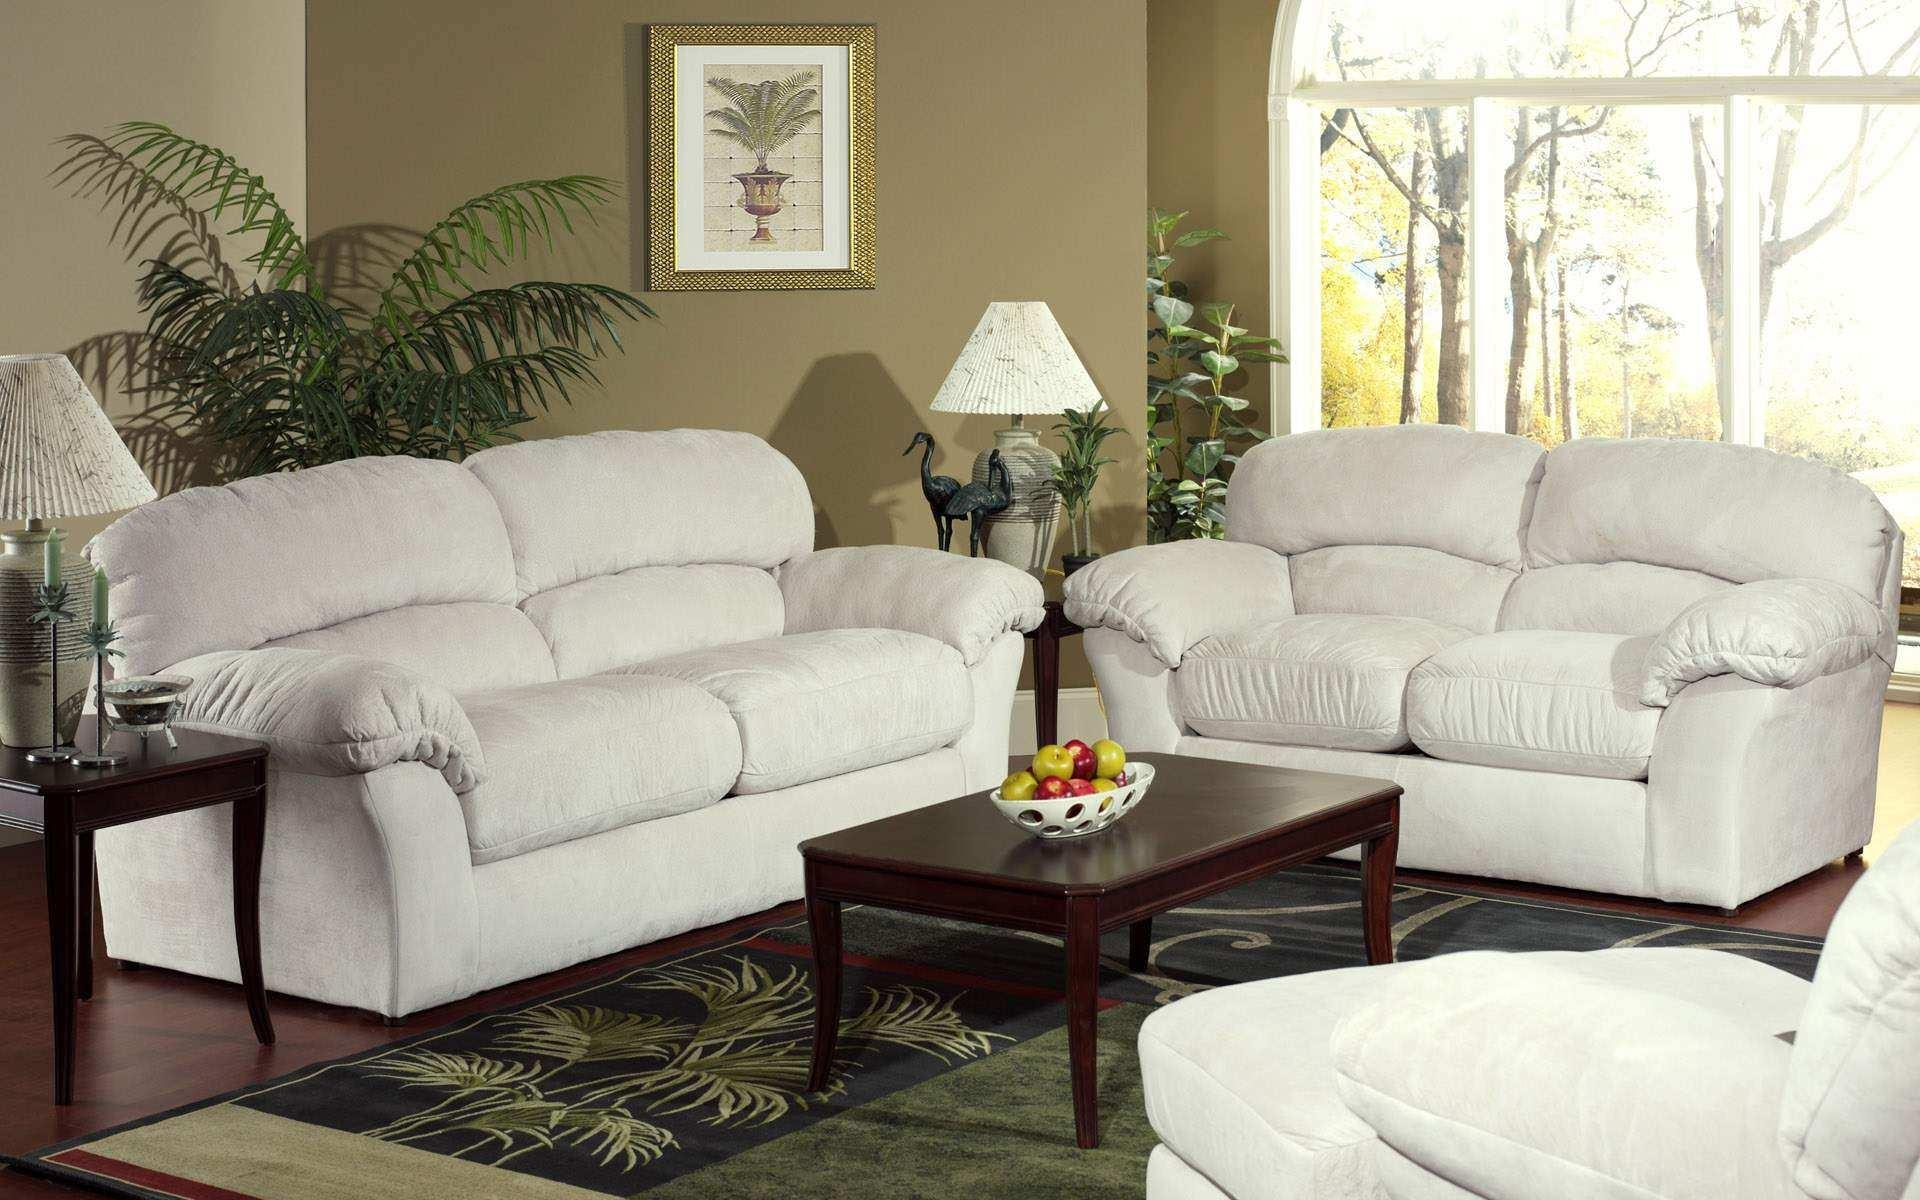 Furniture: Beauty Sofa In Living Room Living Room Furniture Throughout Living Room Sofa Chairs (Image 9 of 20)